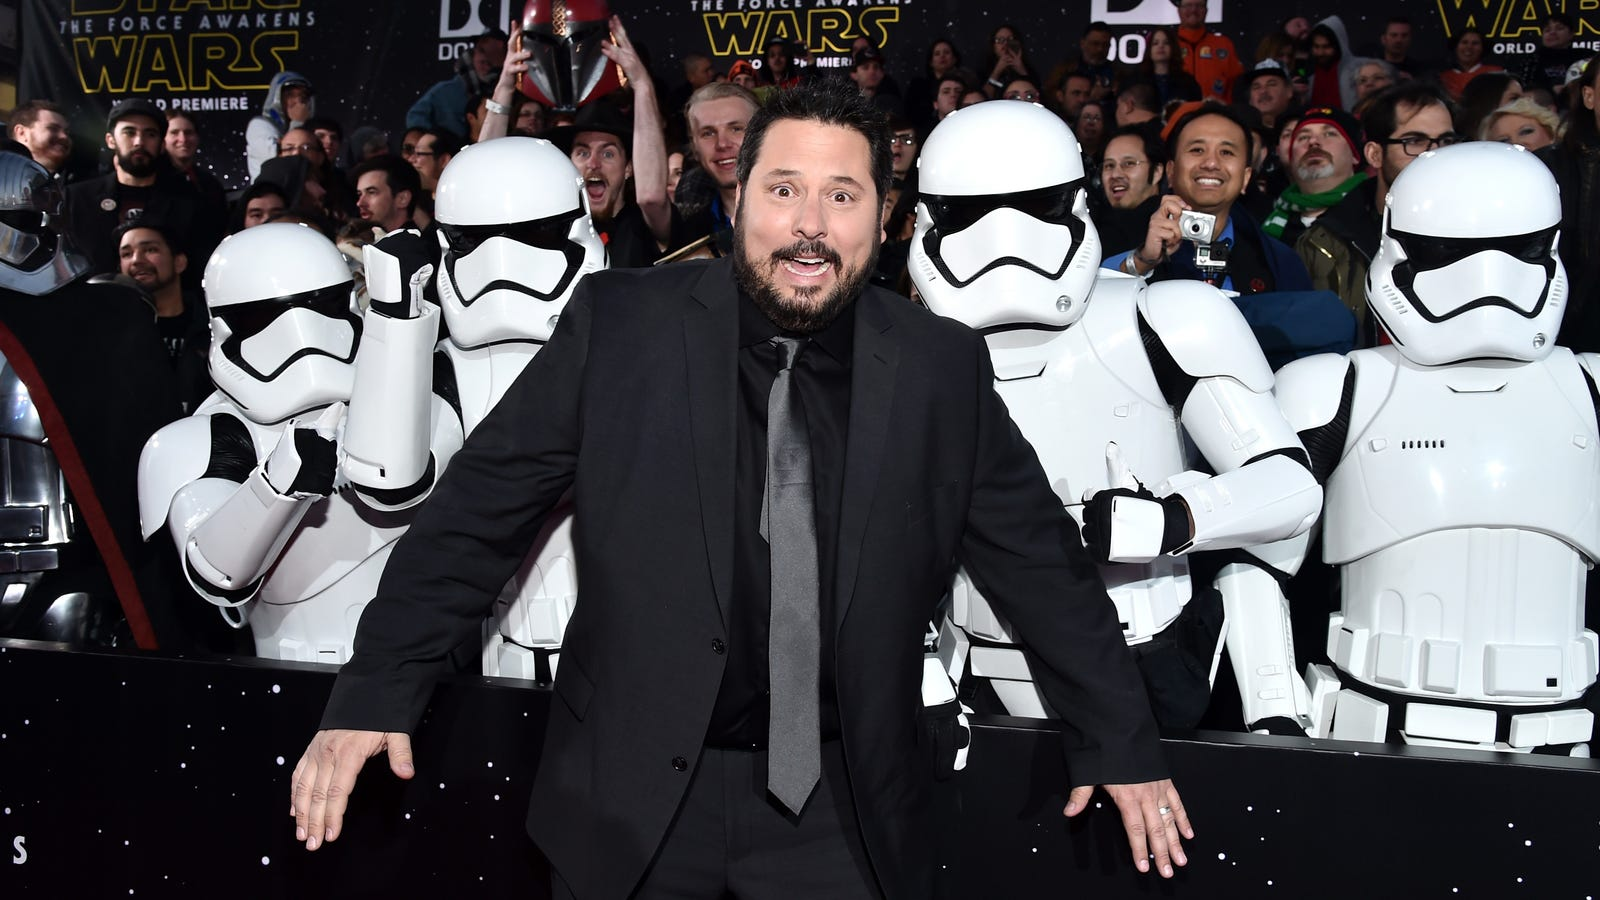 Greg Grunberg continues to parlay friendship with J.J. Abrams into sweet Star Wars gigs